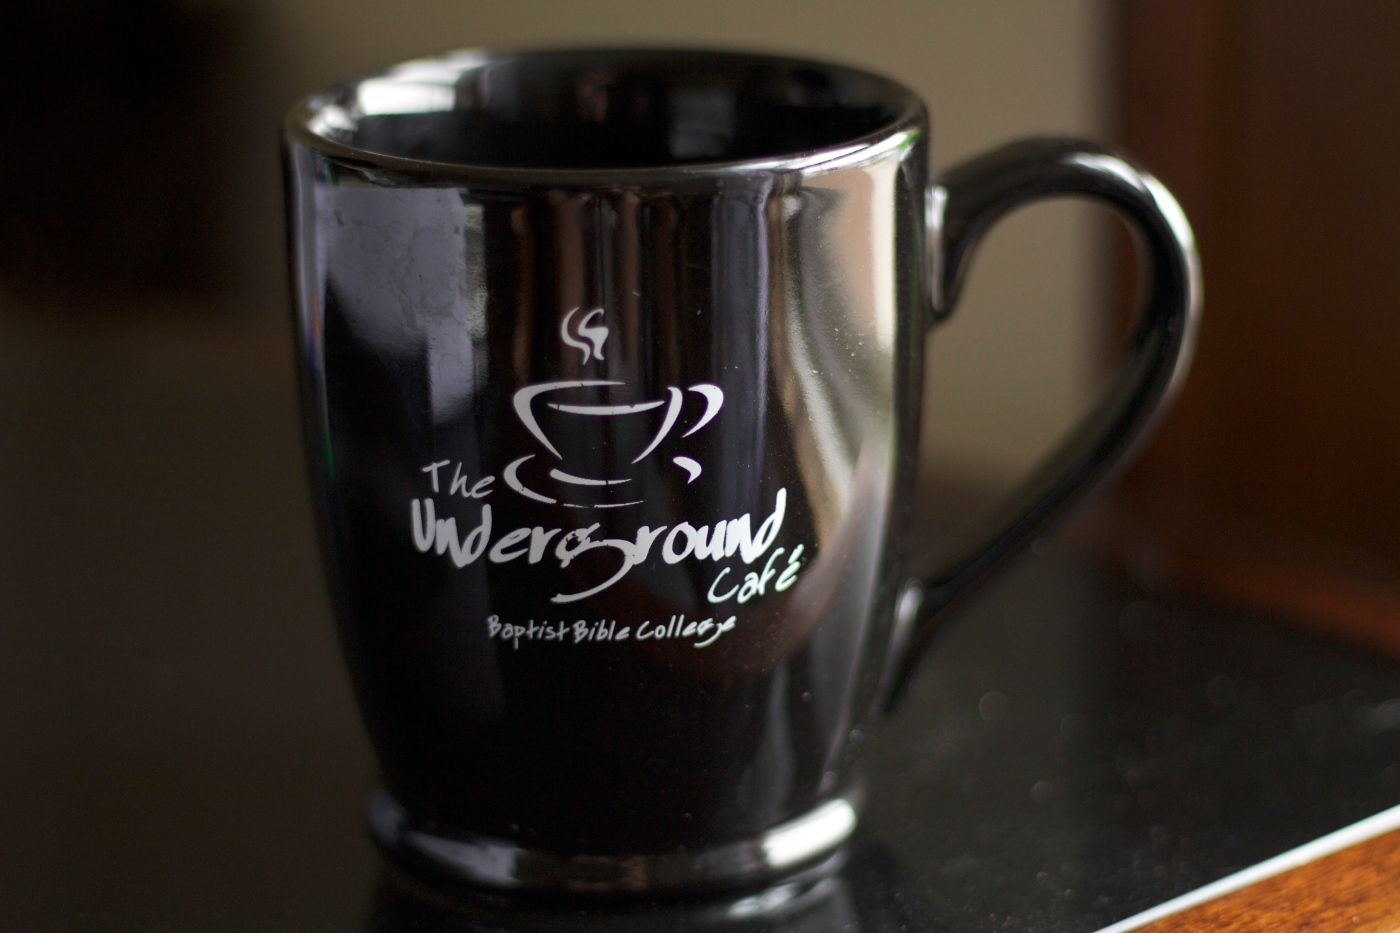 Monday Mug Coffee, Underground Cafe, Clarks Summit University, Storytelling